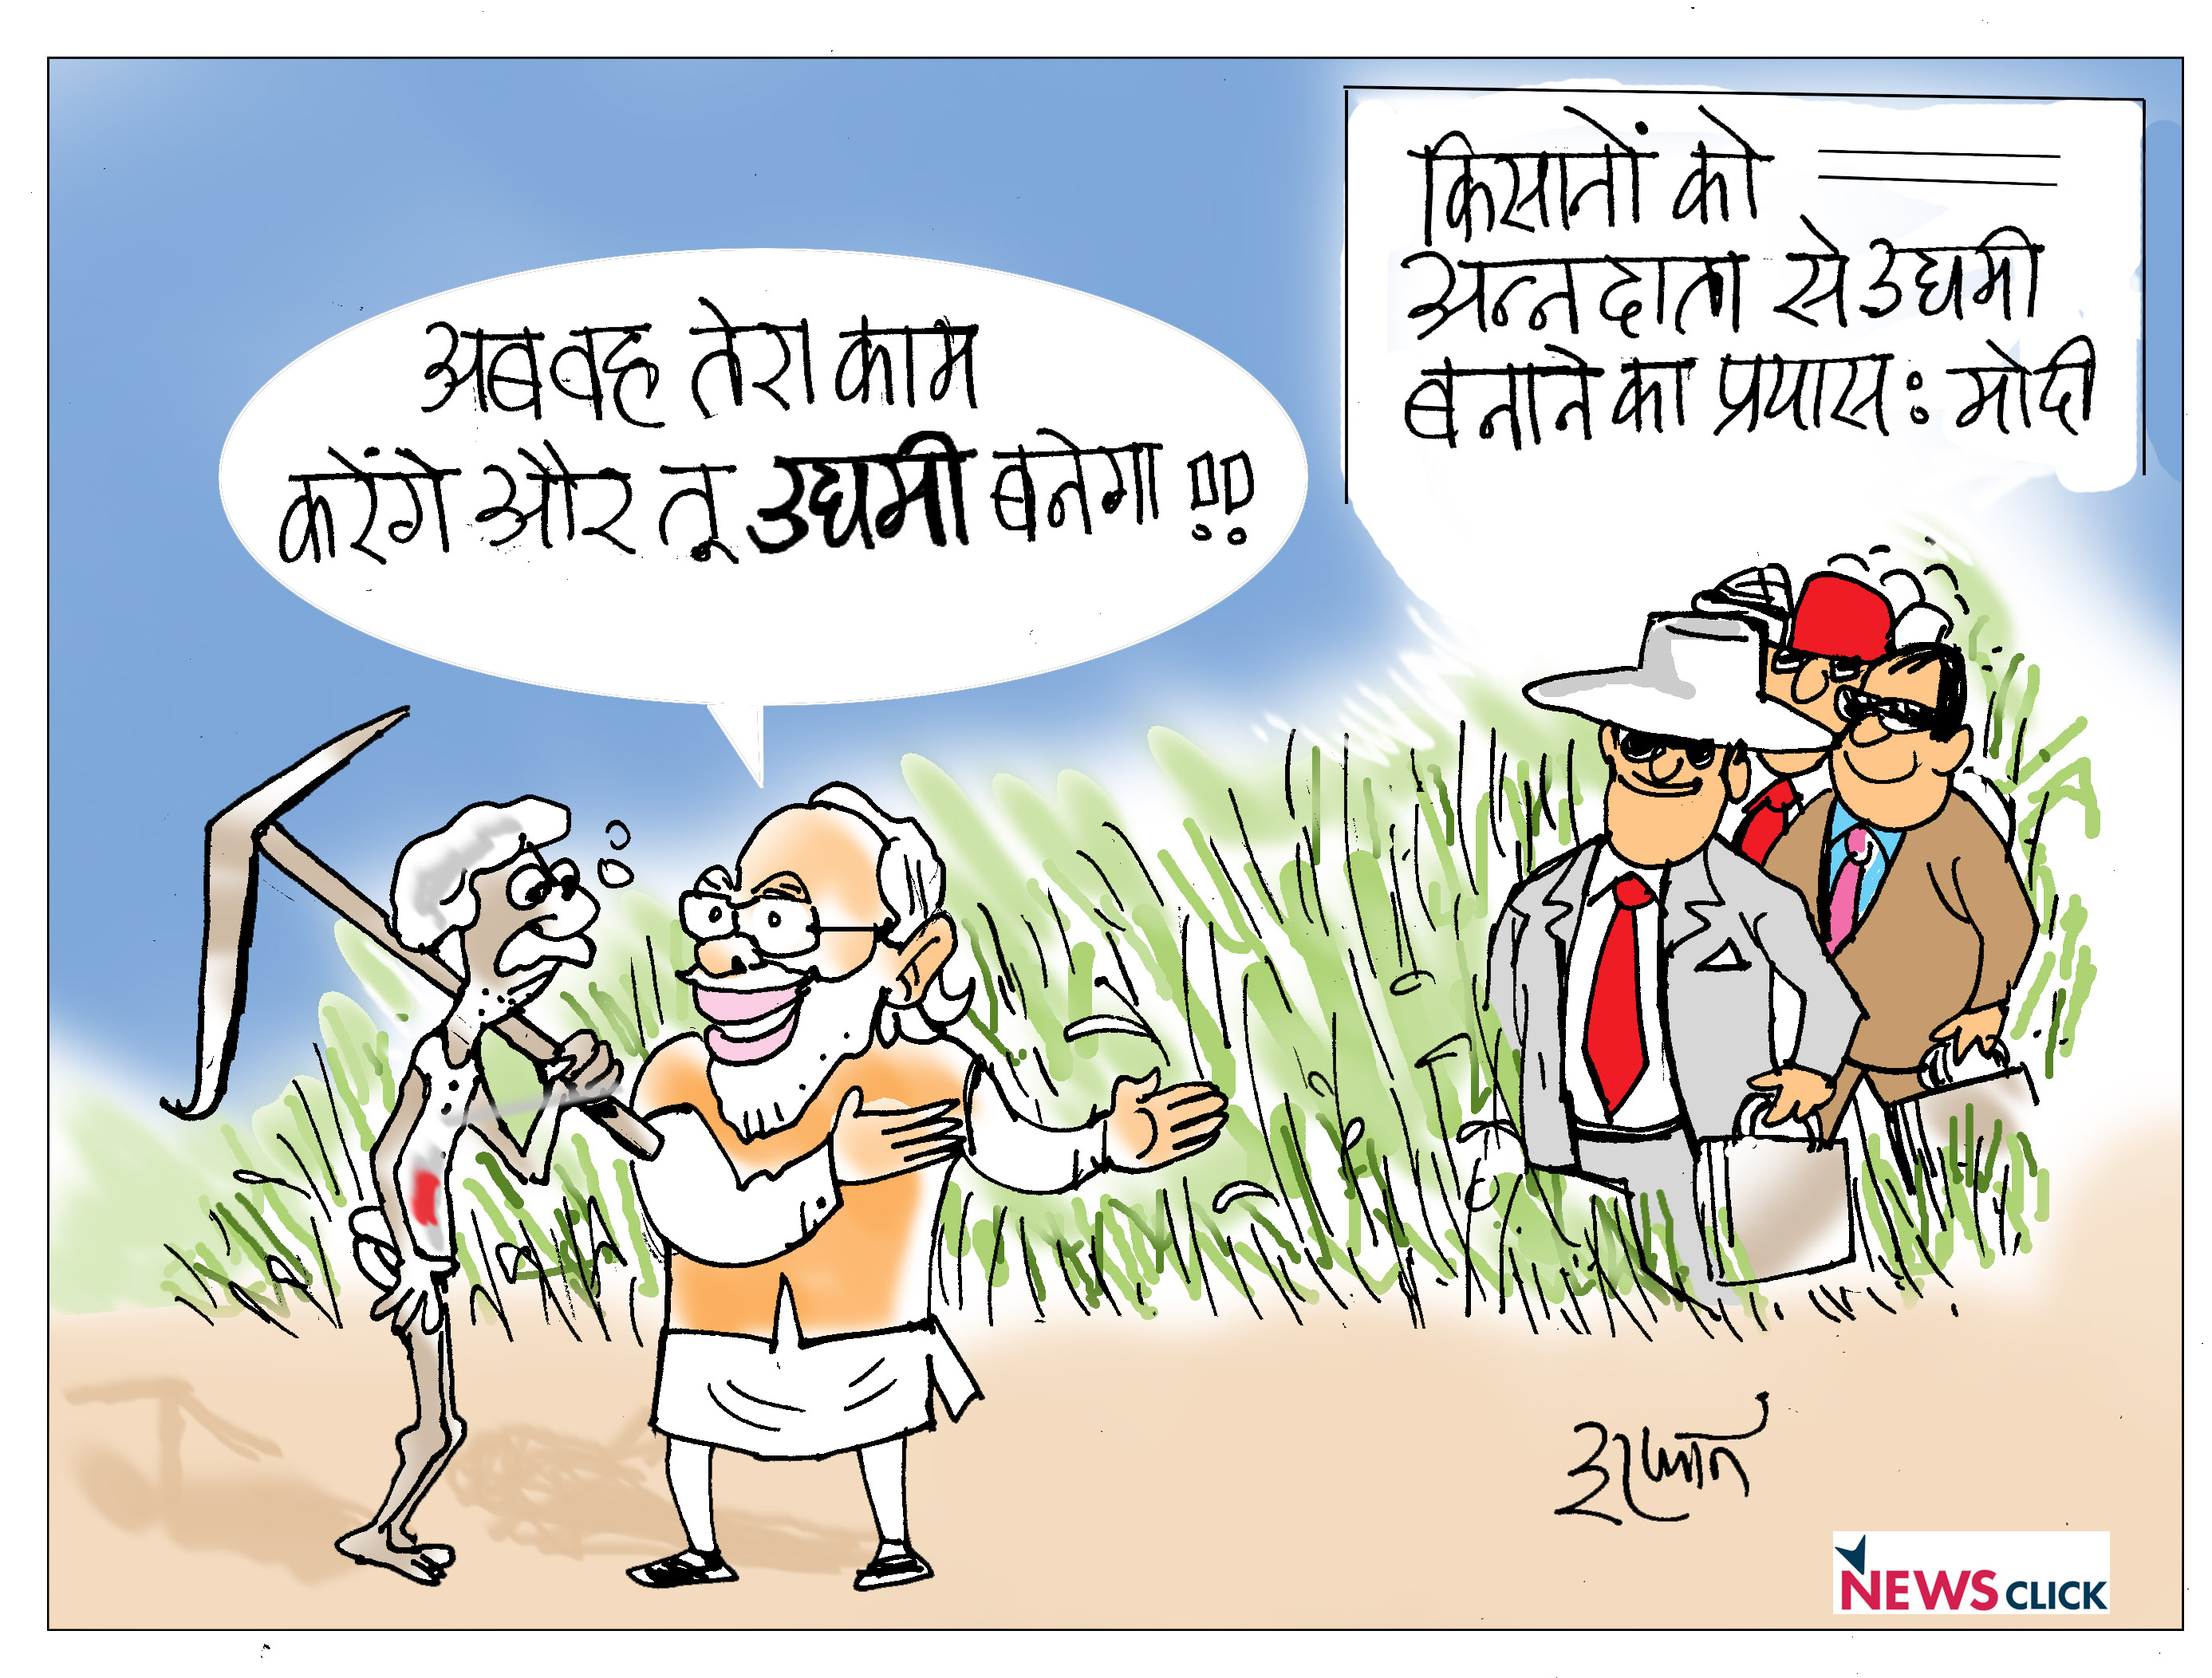 /Cartoon-Click-Another-attack-on-Farmers